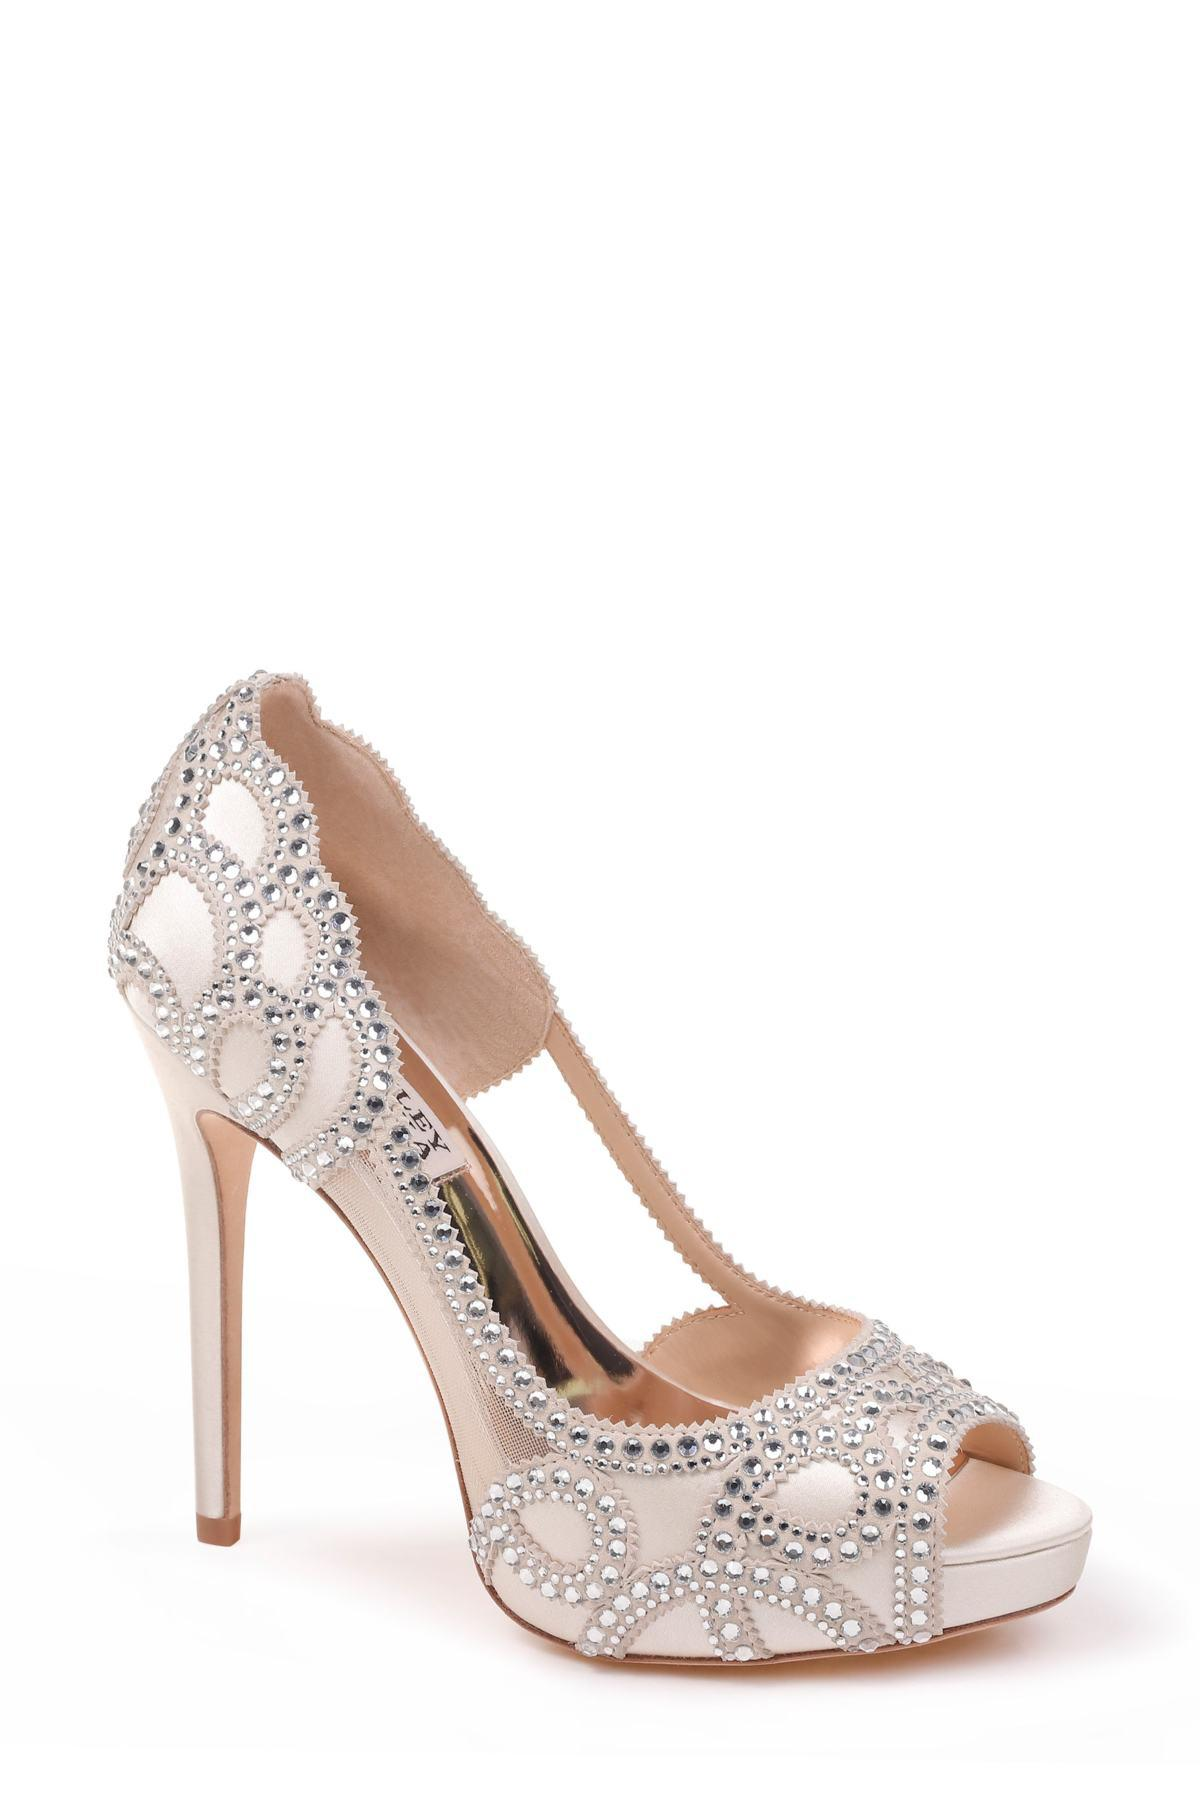 6c0e420c67f Badgley Mischka. Women s Witney Embellished Peep Toe Pump